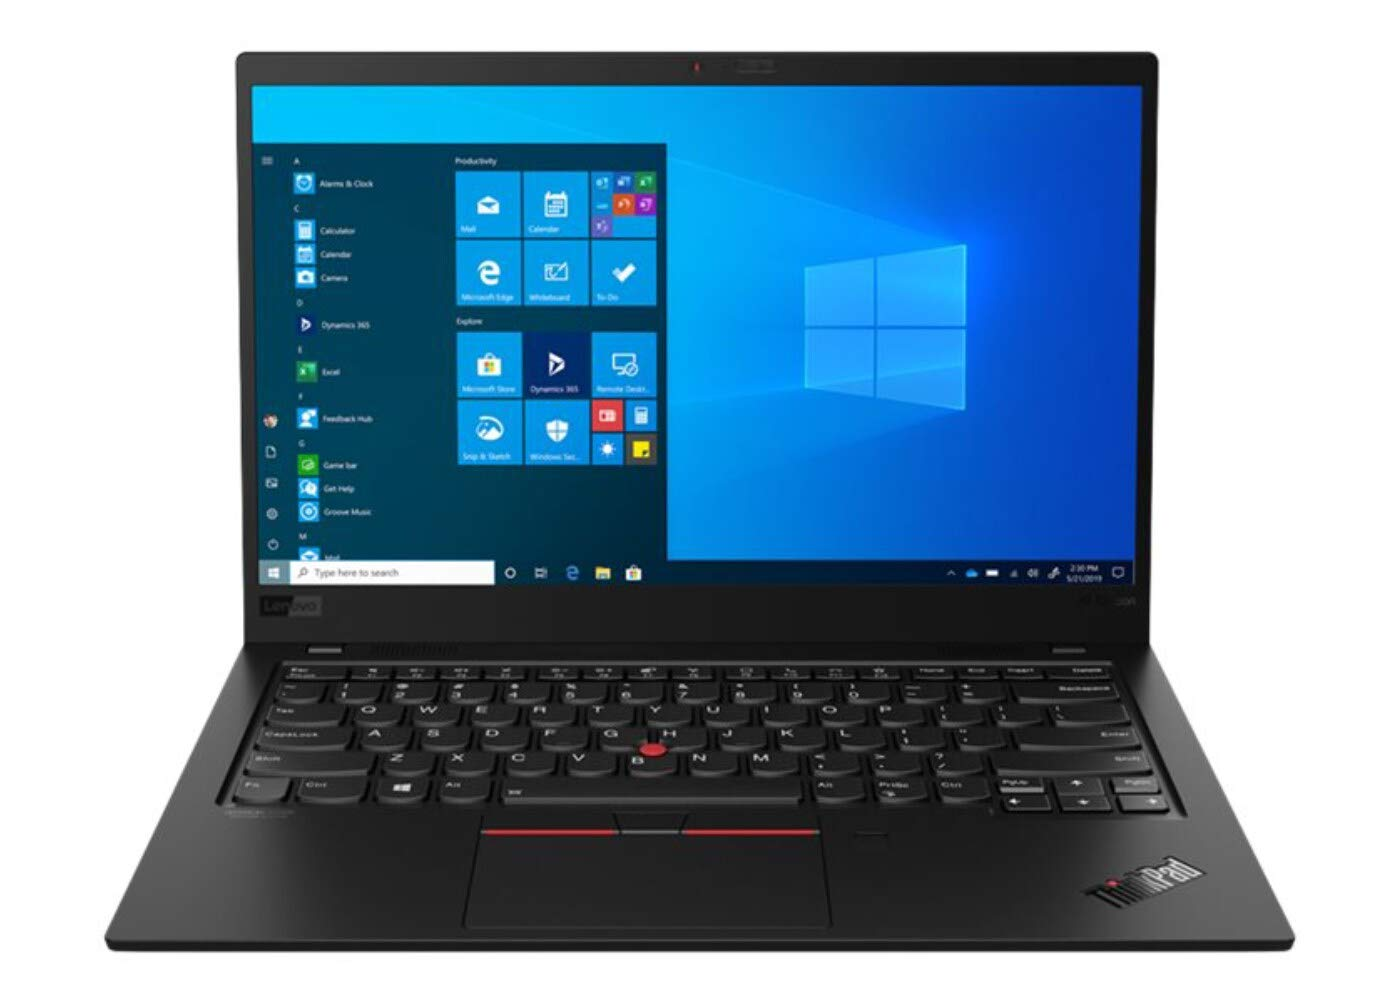 "Latest Gen 8 Lenovo ThinkPad X1 Carbon 14"" FHD Ultrabook (400 nits) with 10th Gen Intel i7-10510U Processor up to 4.90 GHz, 1 TB PCIe SSD, 16GB RAM, and Windows 10 Pro"